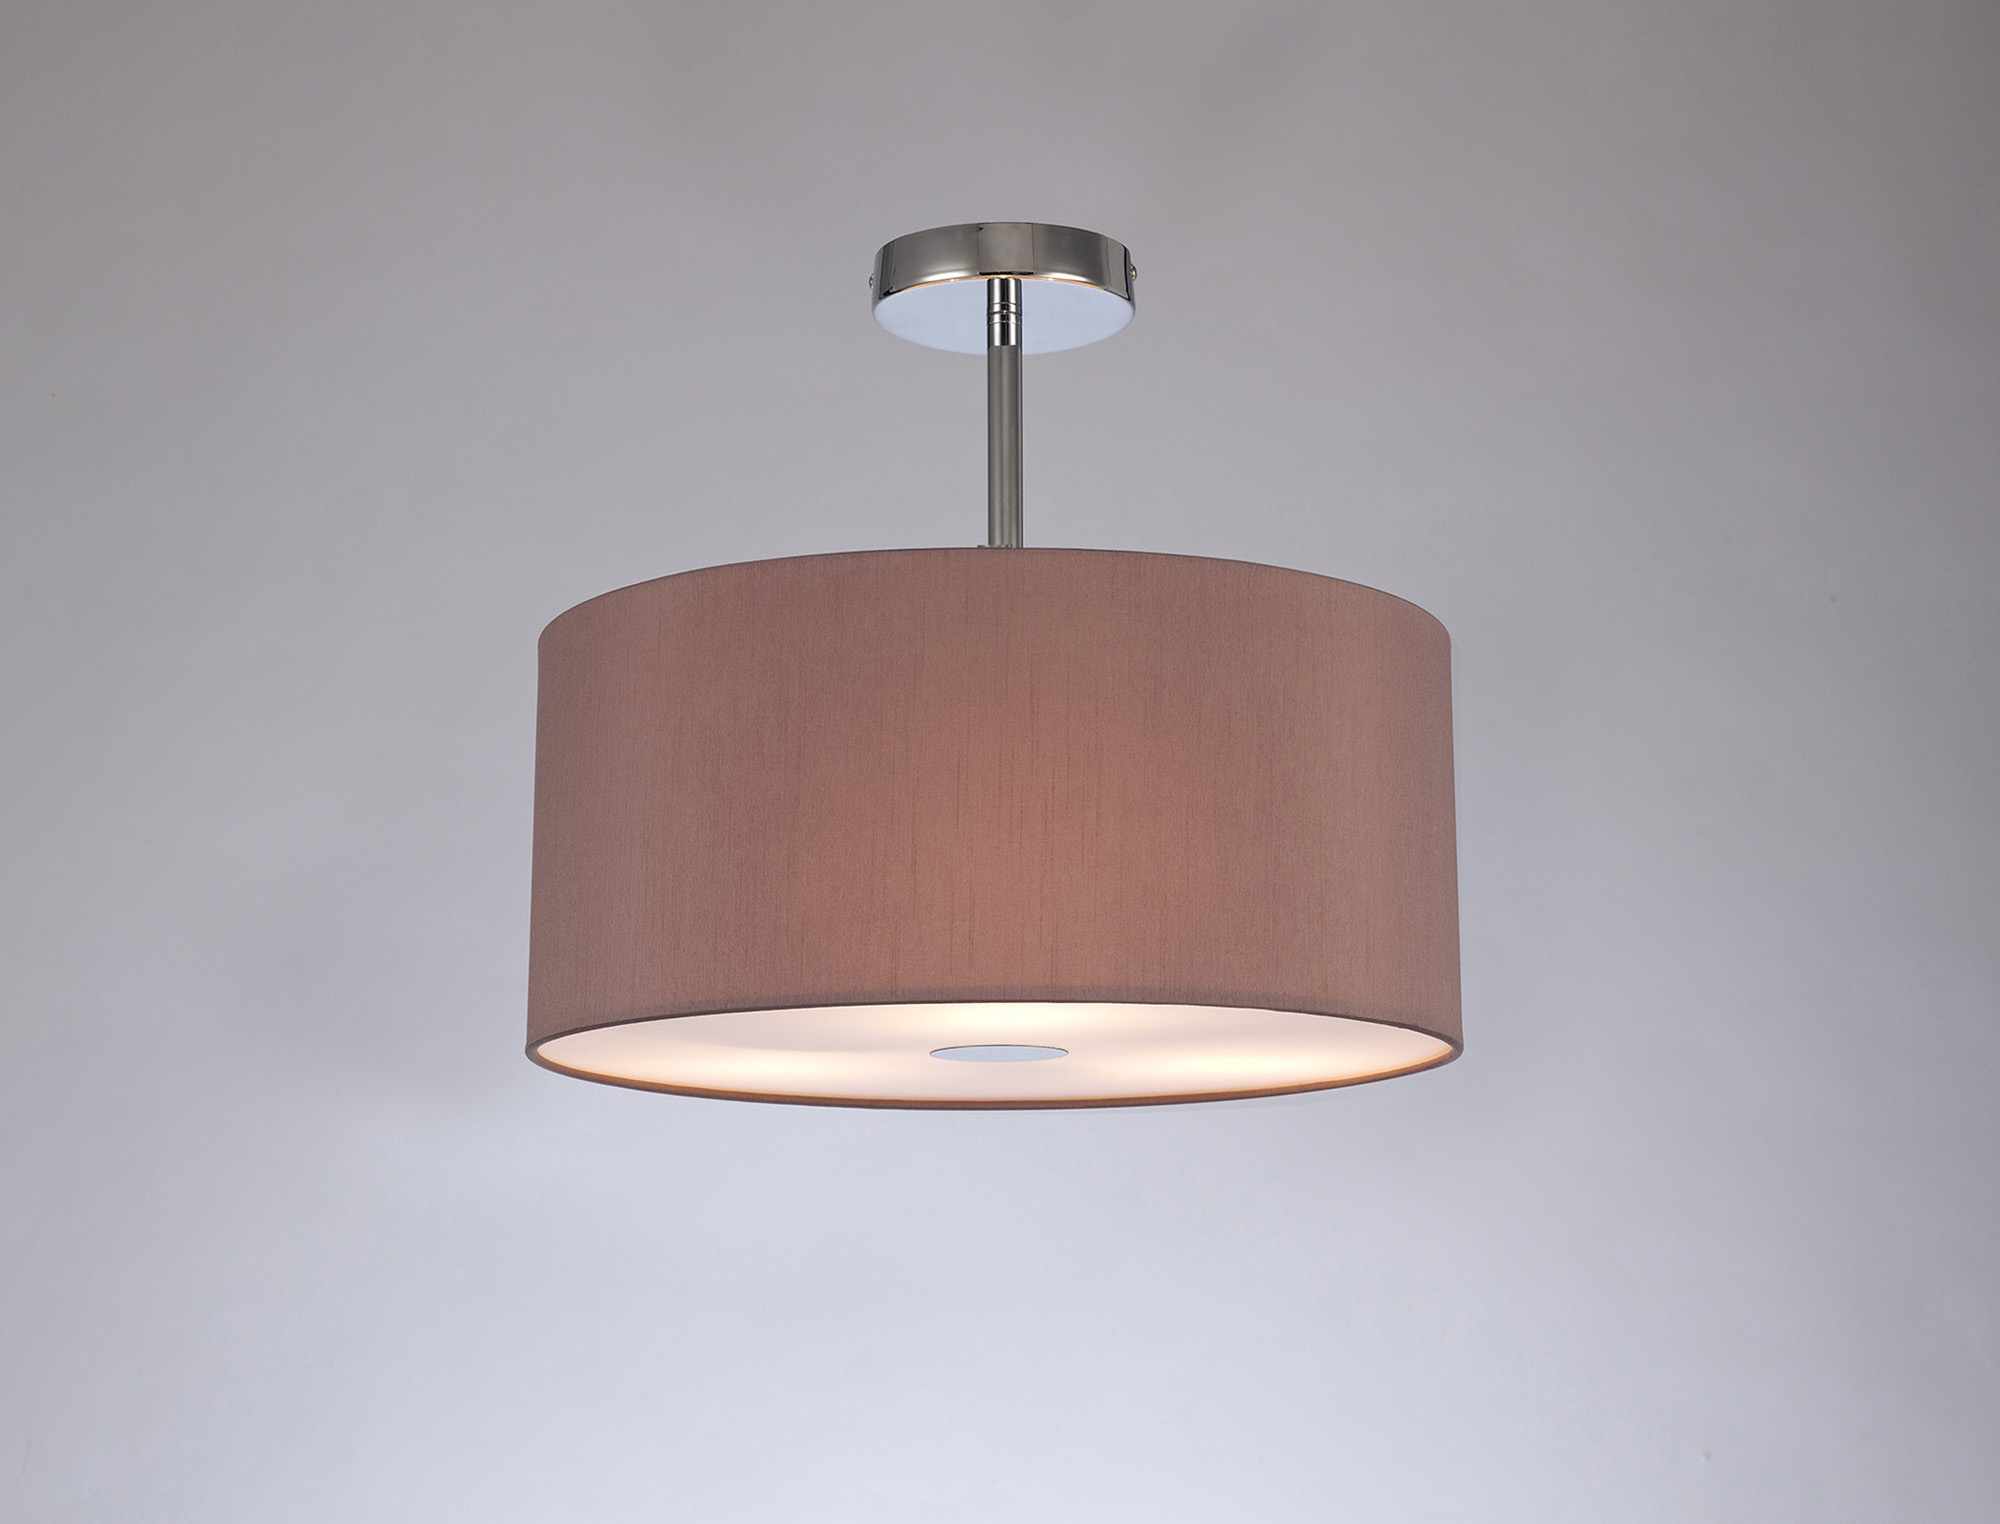 Baymont CH TA Ceiling Lights Deco Contemporary Ceiling Lights